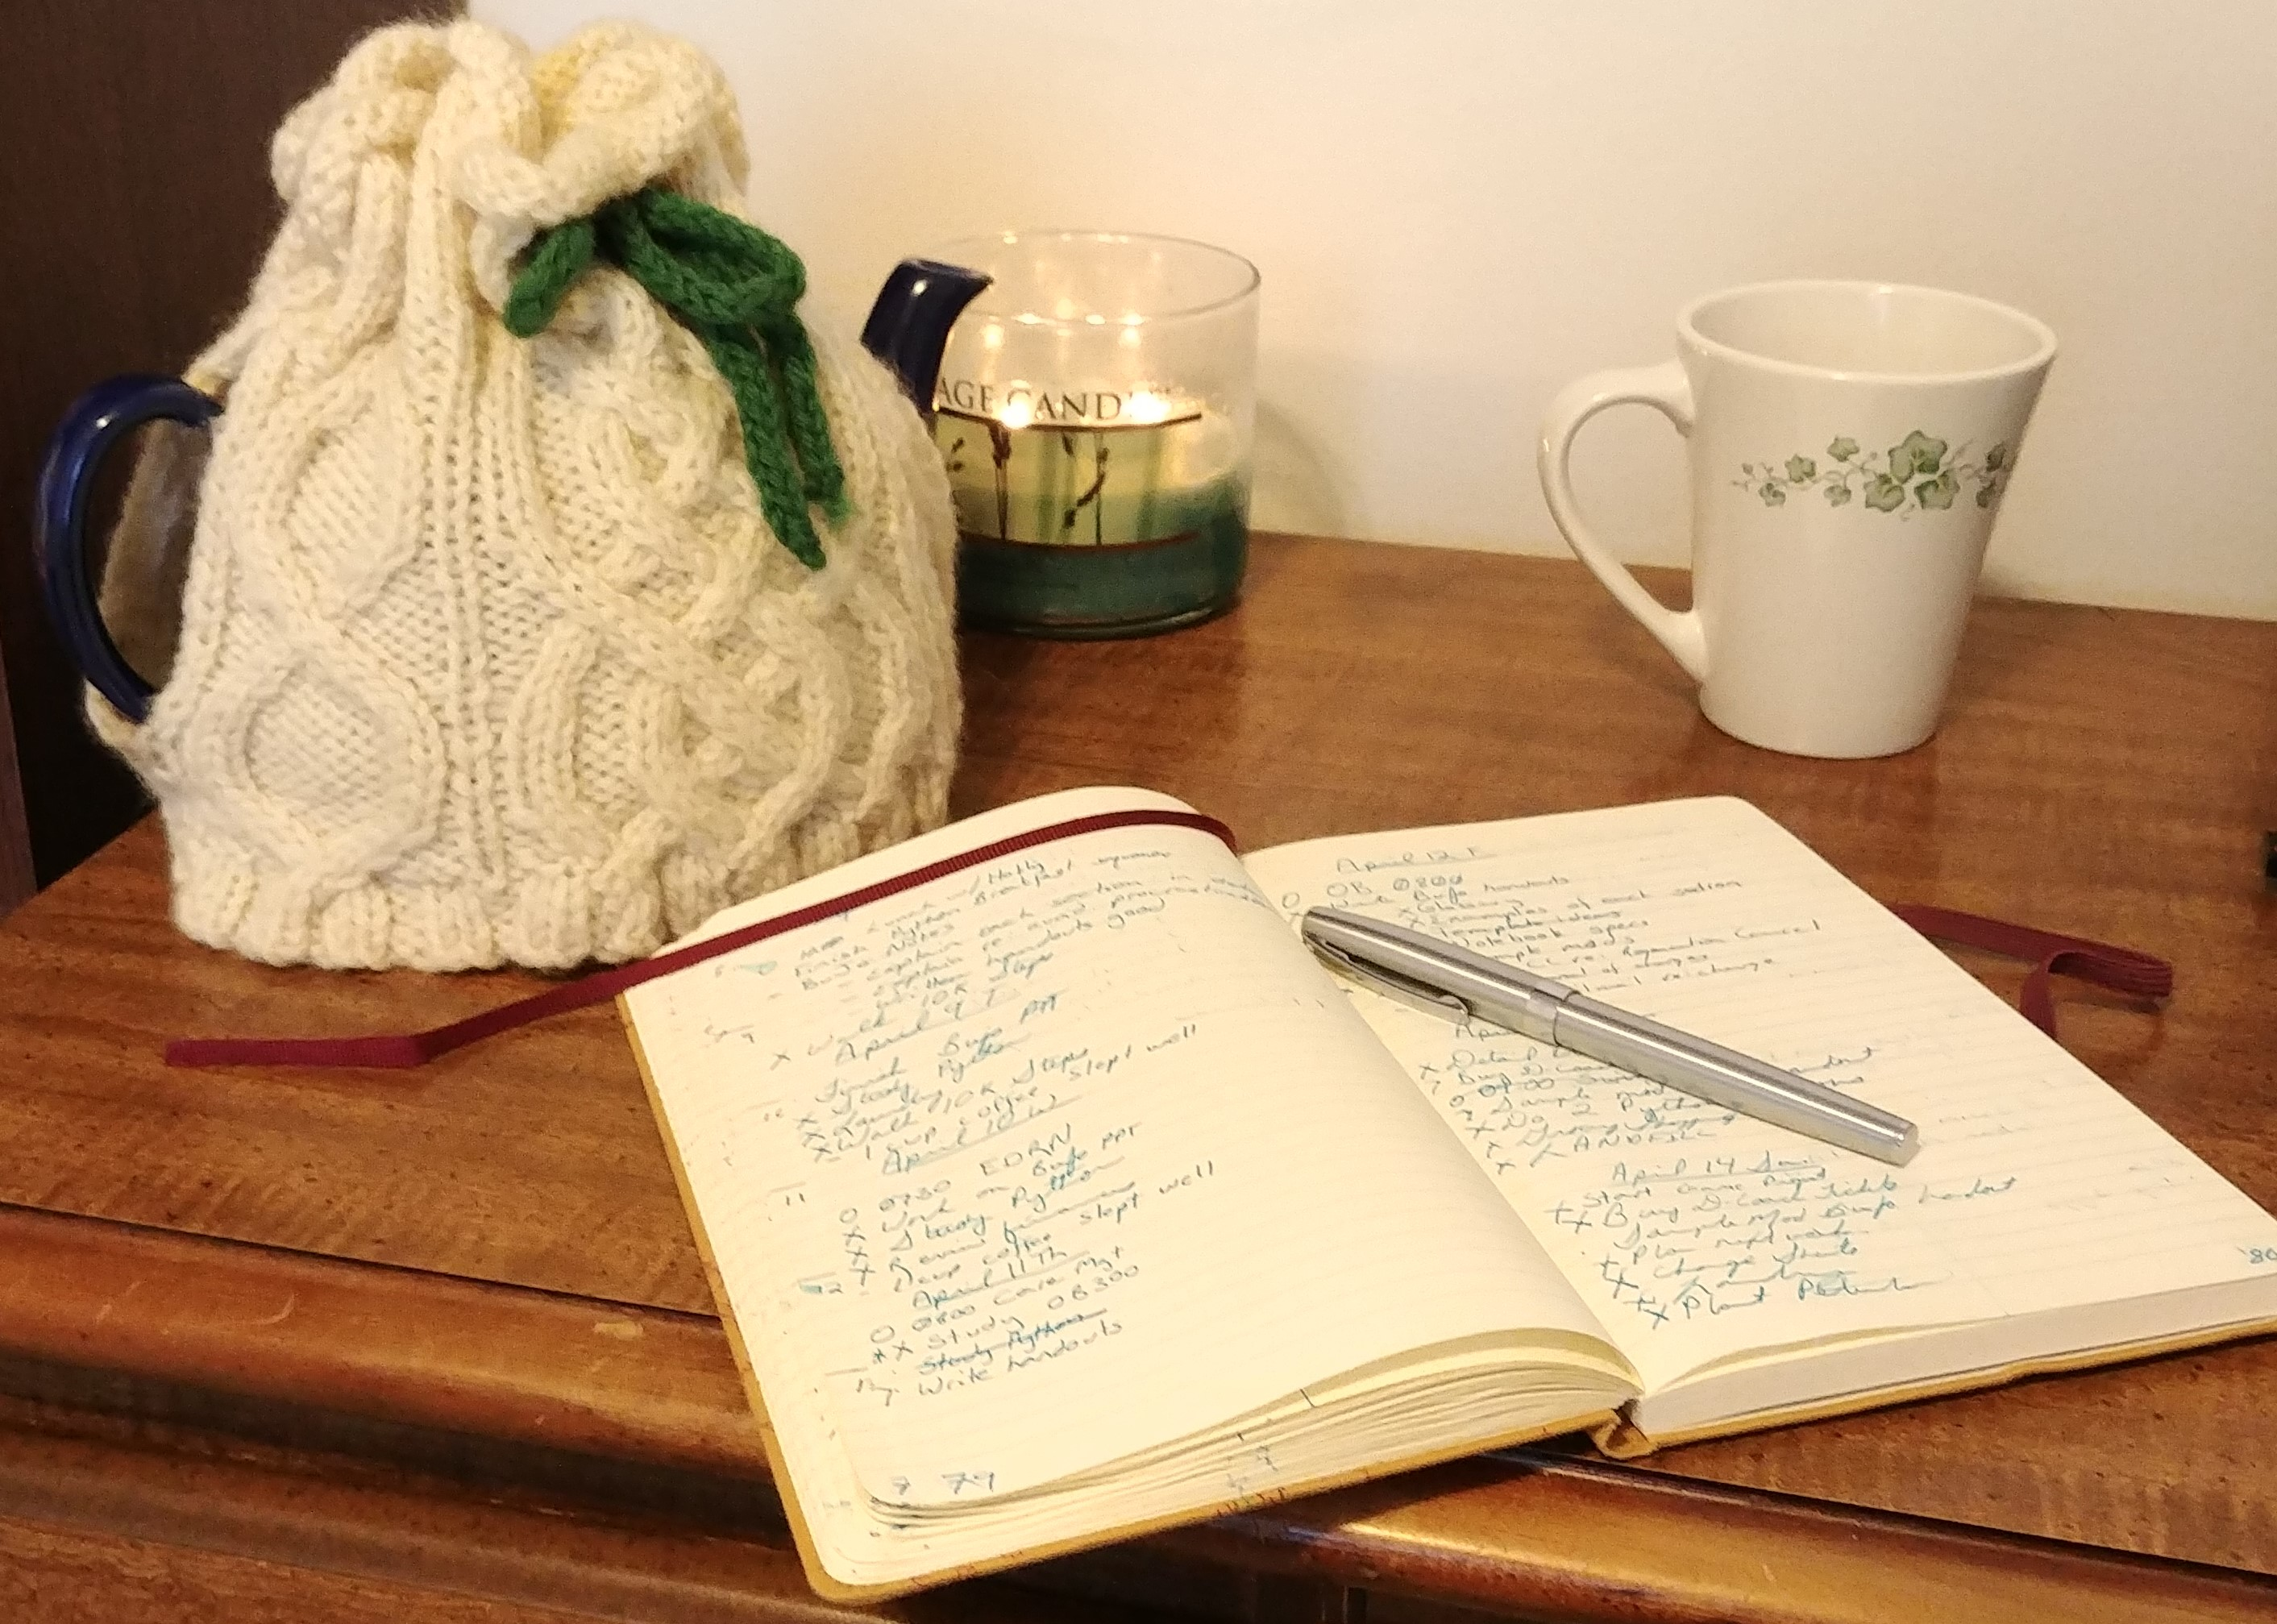 A notebook, candle and teapot with cozy